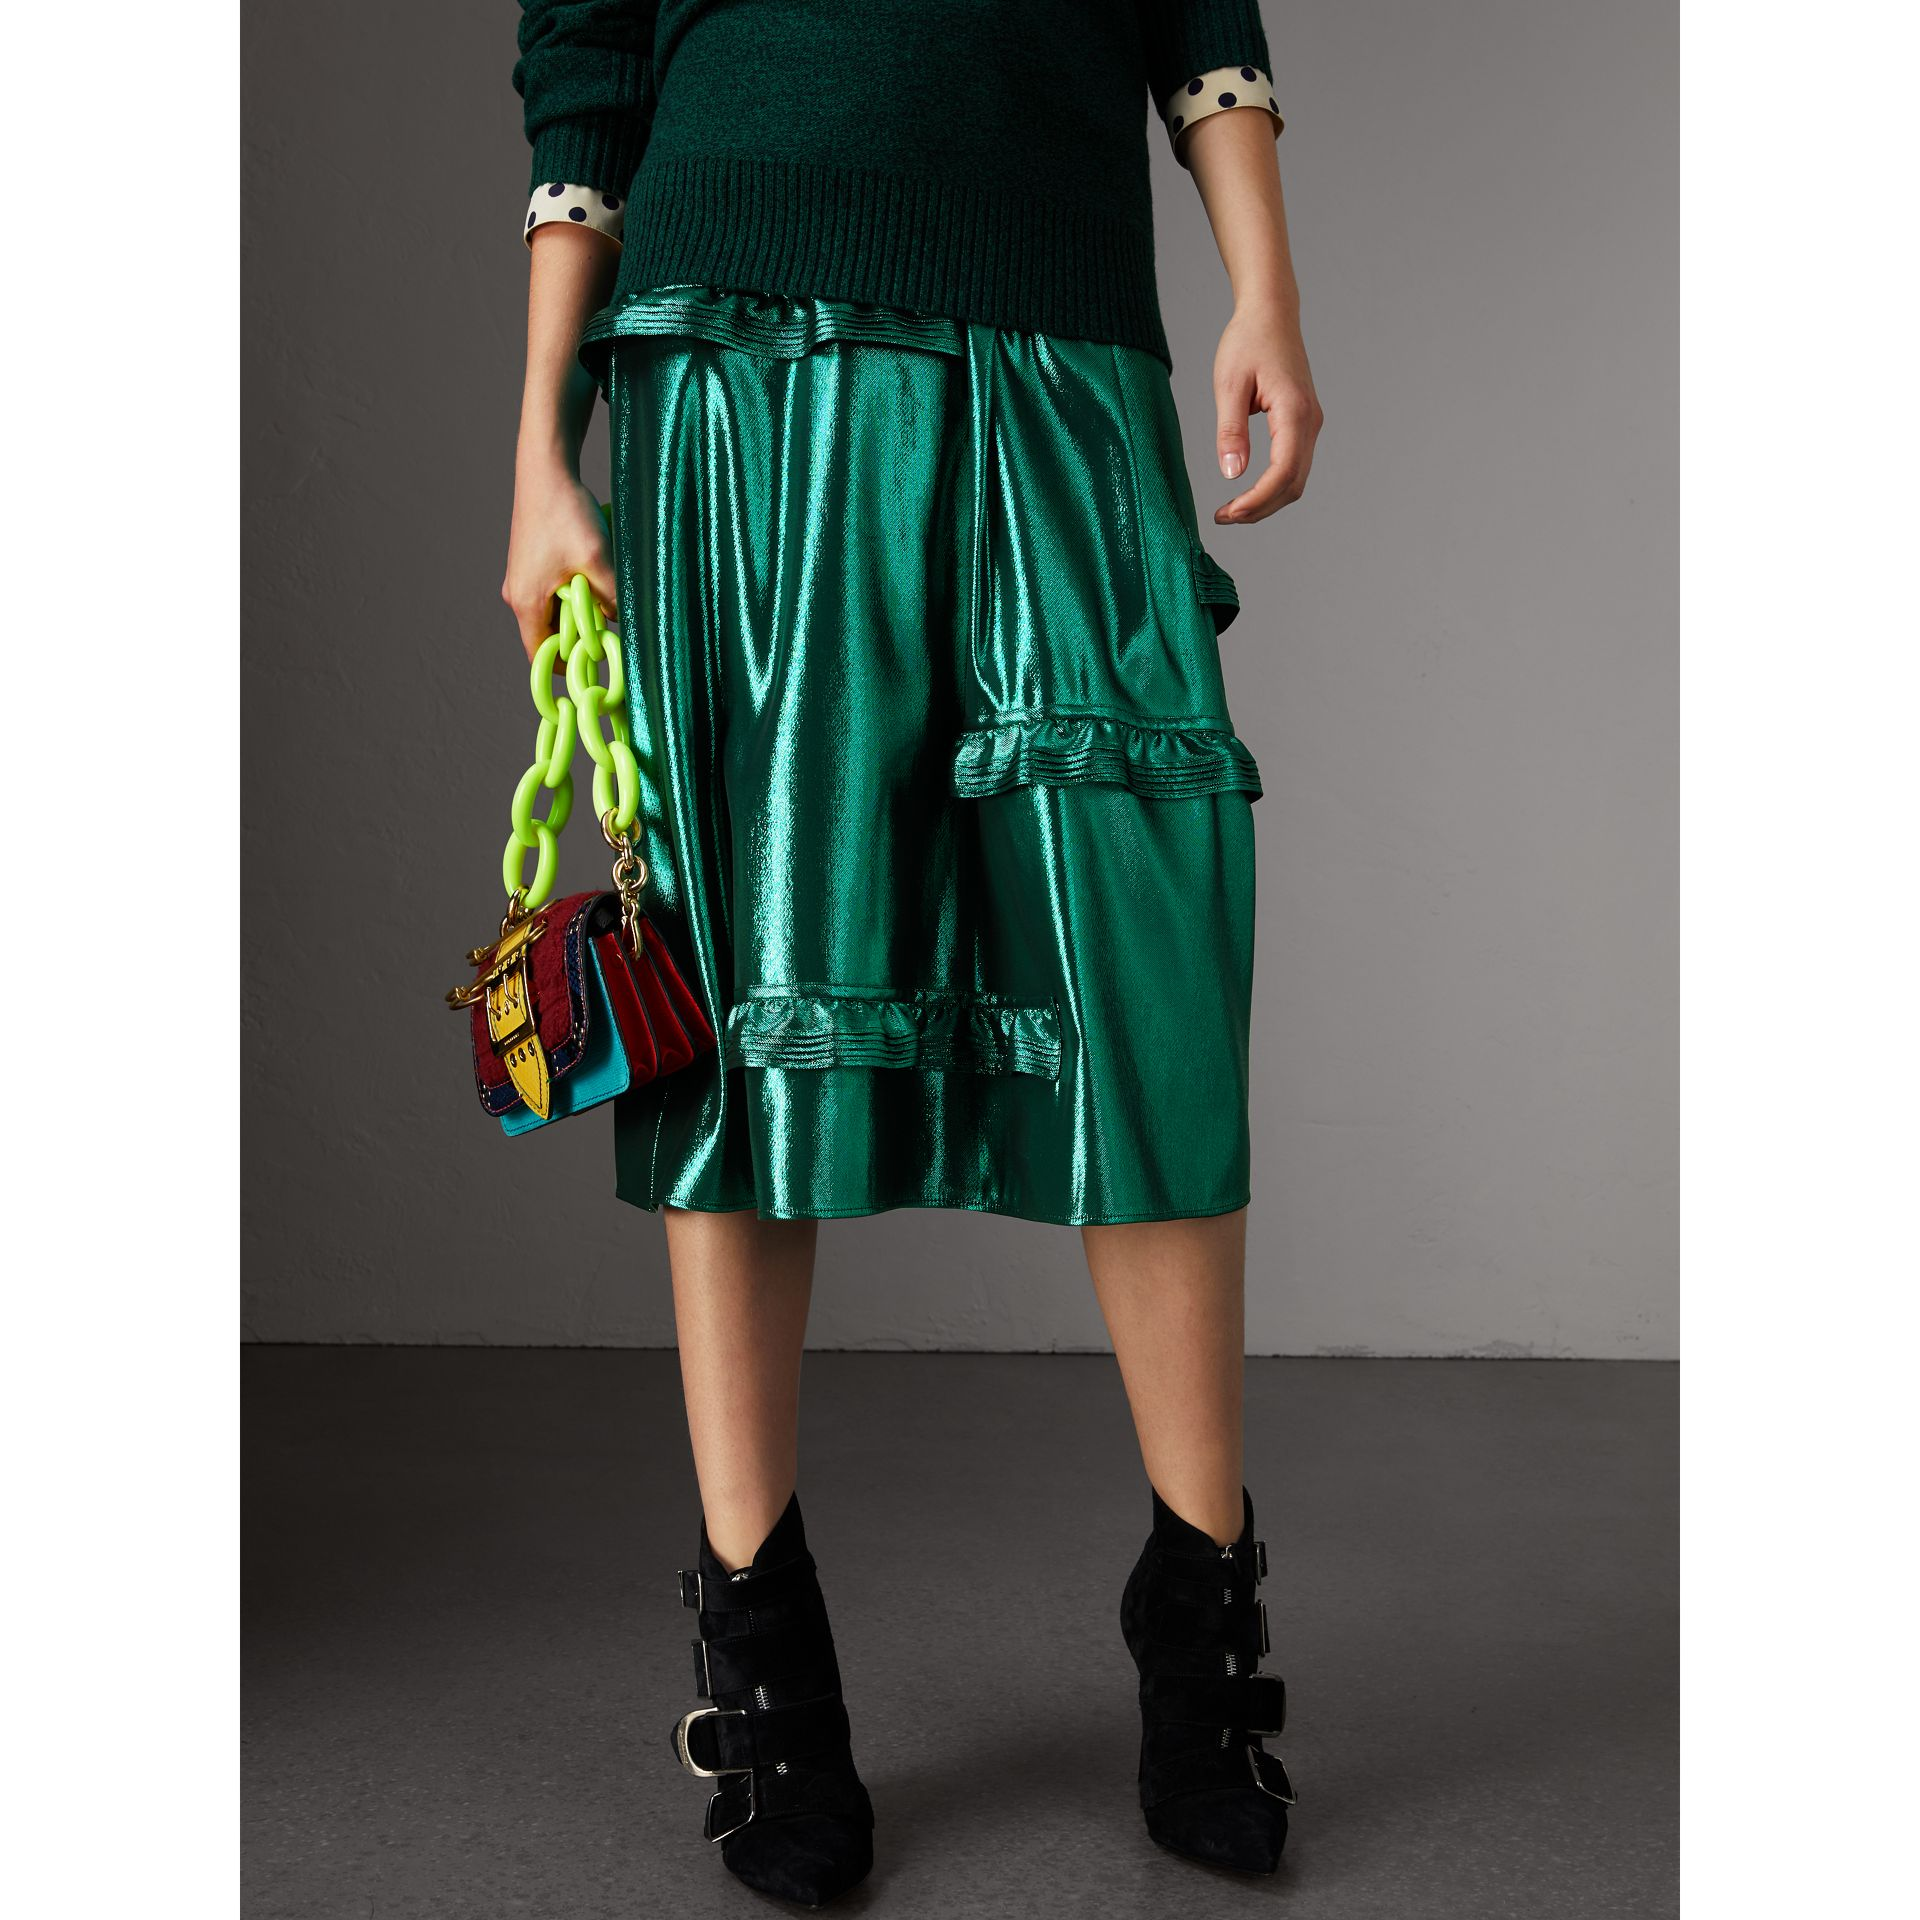 Ruffle Detail Lamé Skirt – Online Exclusive in Turquoise - Women | Burberry Hong Kong - gallery image 5